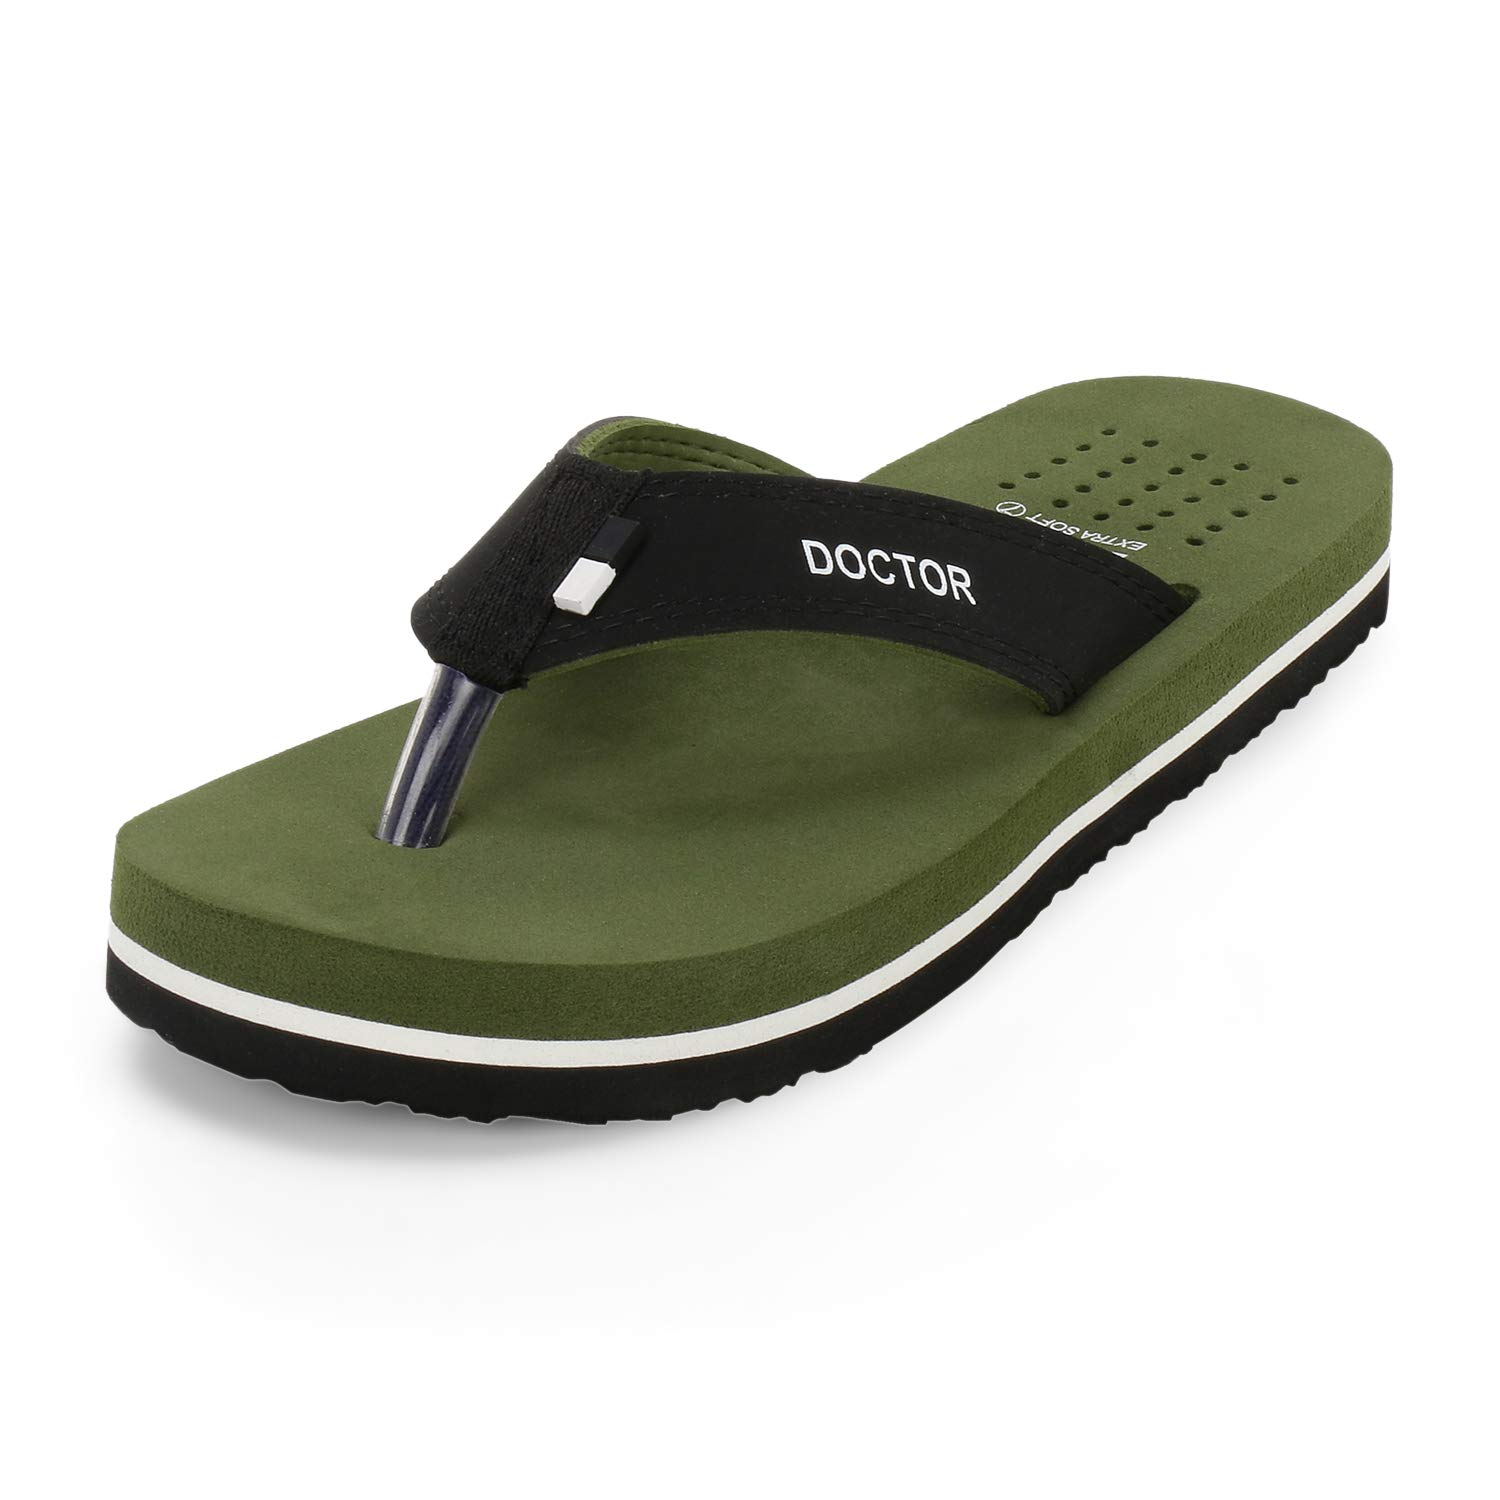 DOCTOR EXTRA SOFT Men's Green Dr.Slippers (12 IND/UK, 46 EU) (B07BVB43RD) Amazon Price History, Amazon Price Tracker